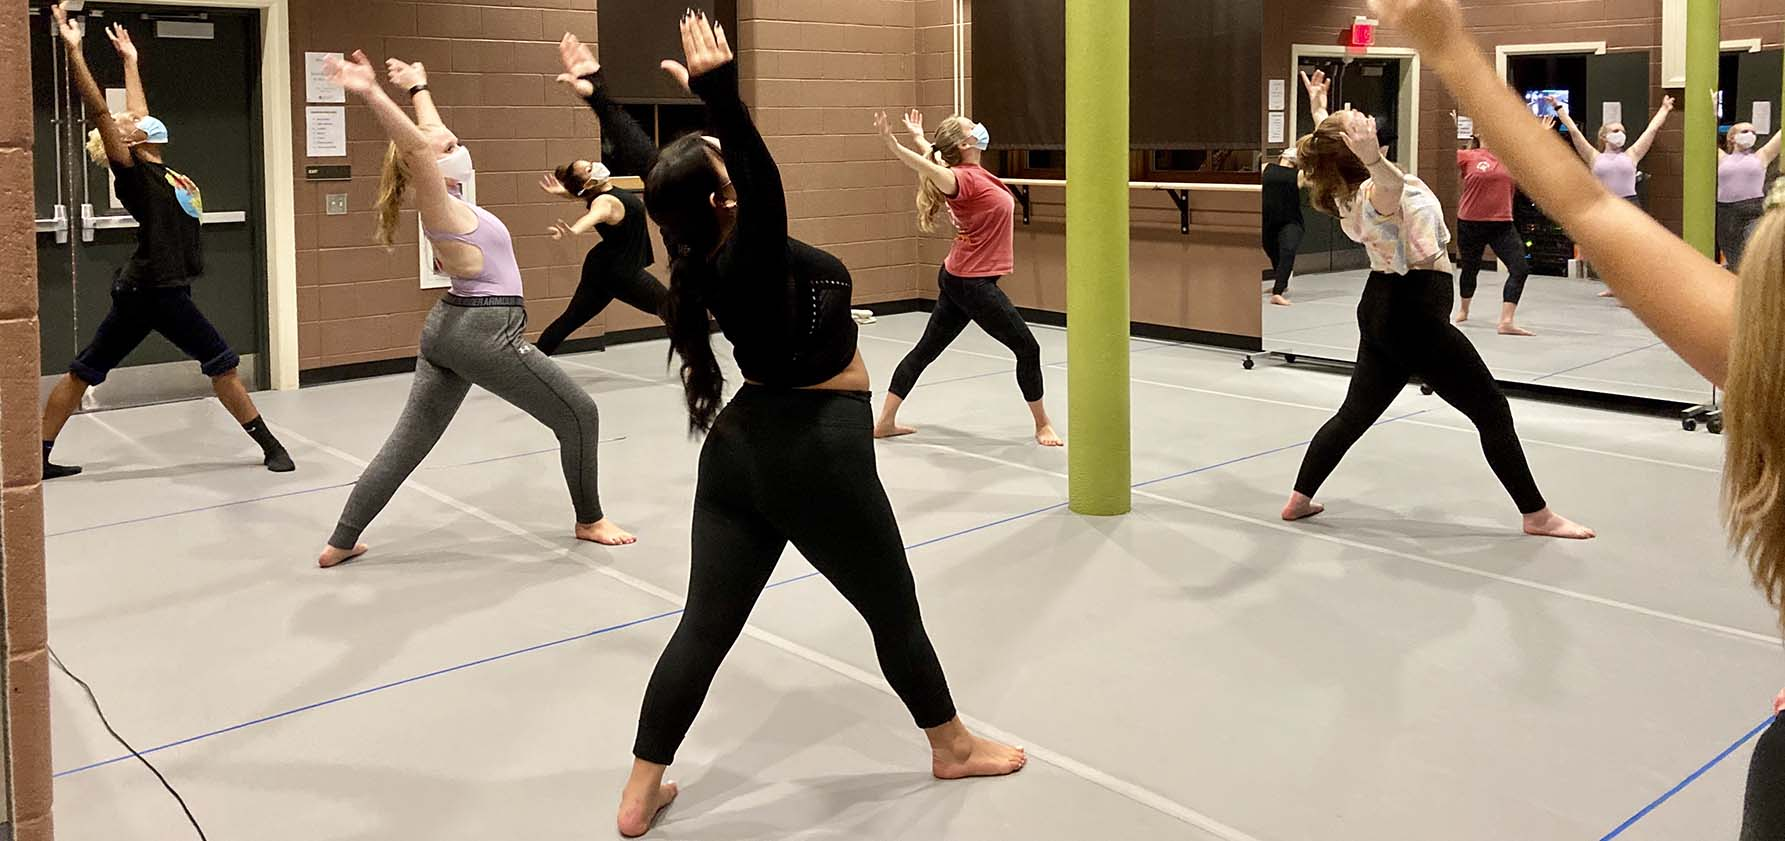 Members of the Moravian College Dance Company practice ballet in the new dance studio.